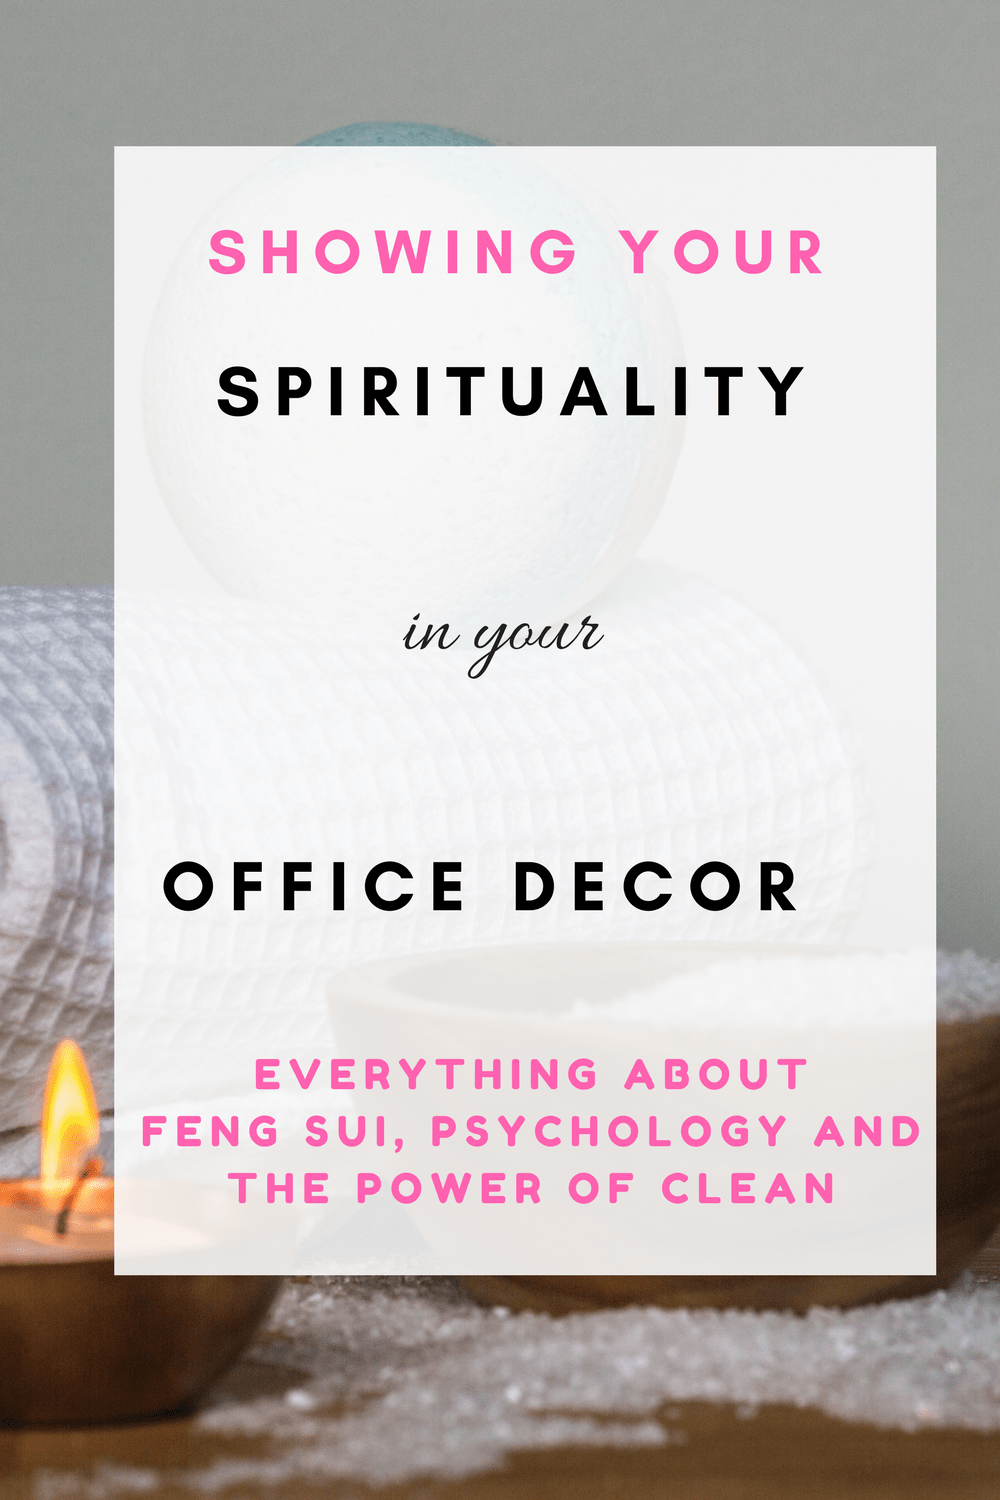 Showing your spirituality in your office